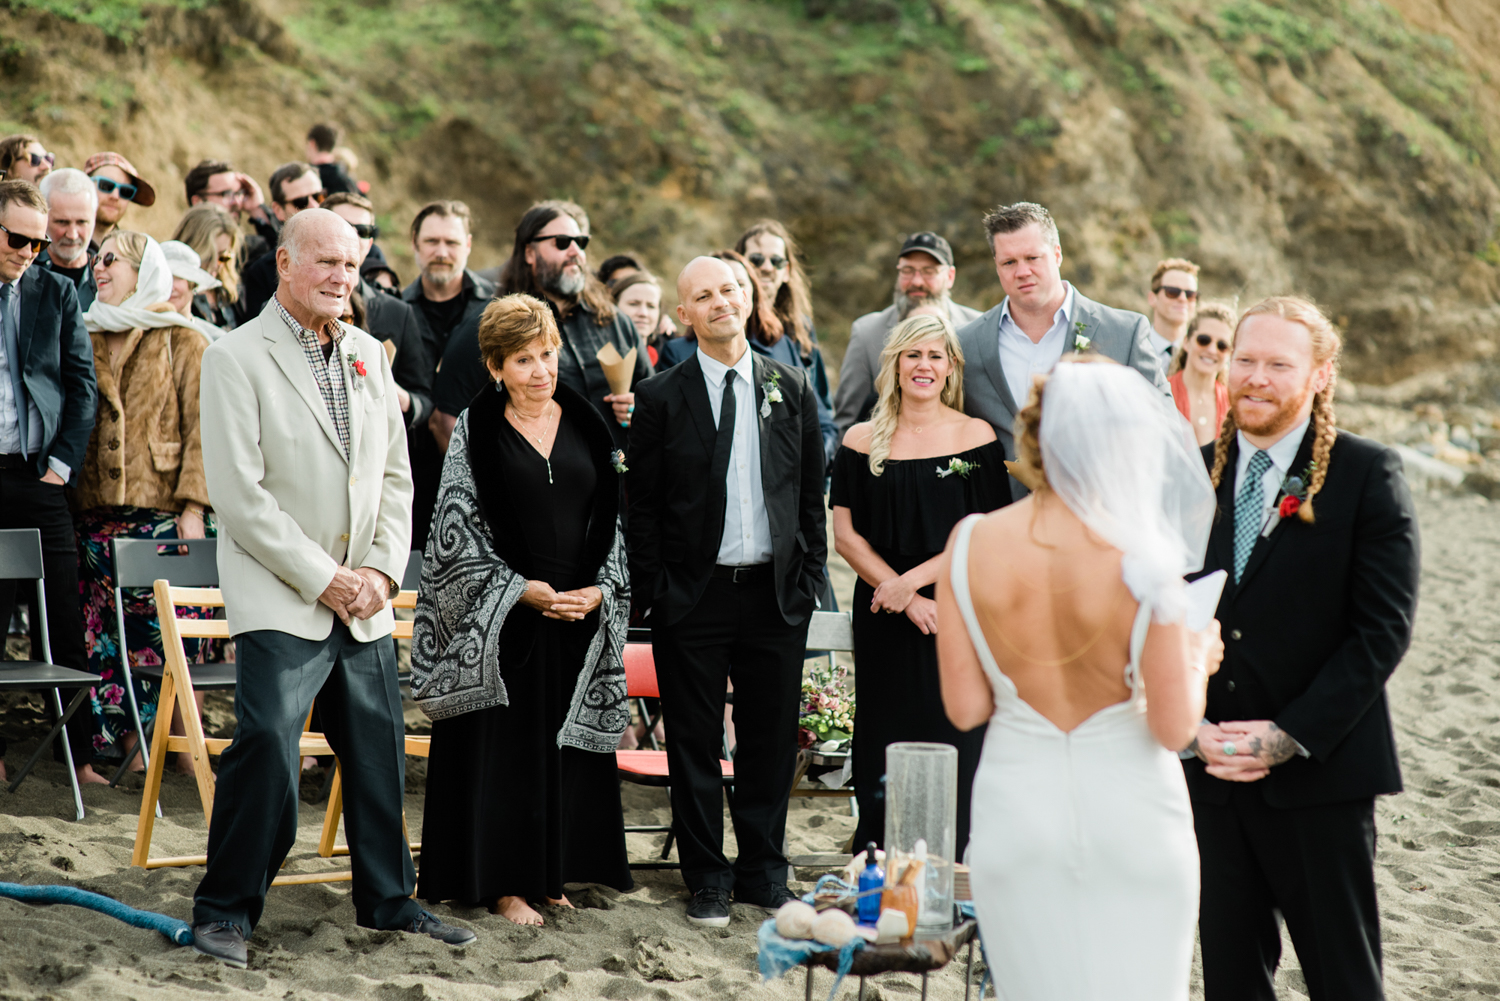 Pacifica_Beach_Surfer_Wedding_108.jpg